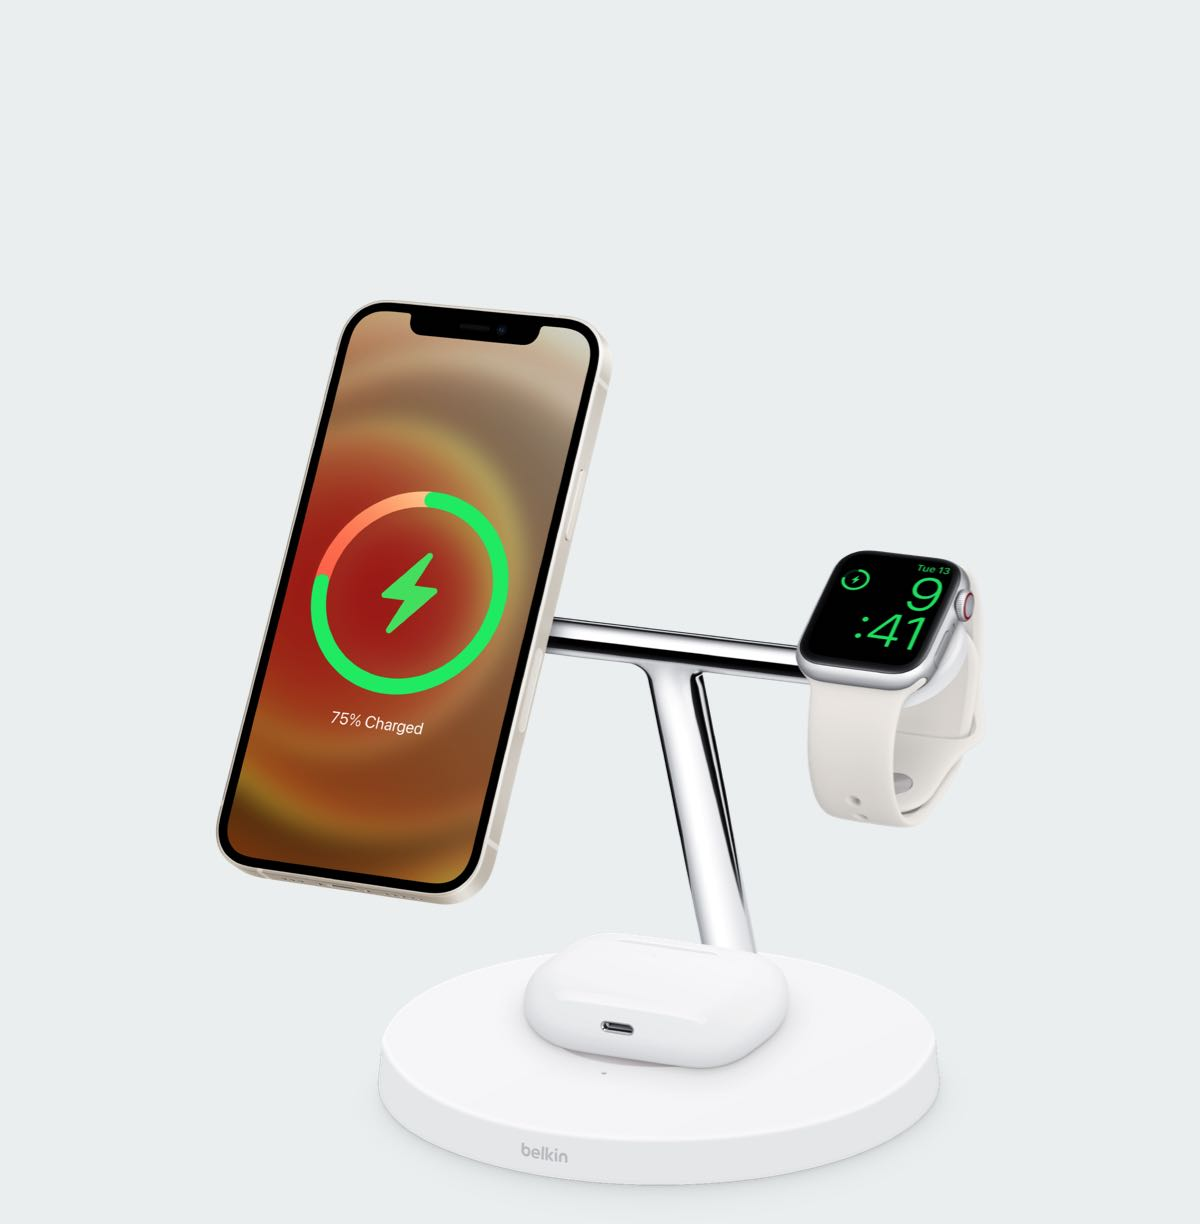 Belkin Boost Charge Pro 3-in-1 draadloze lader met MagSafe Ninove